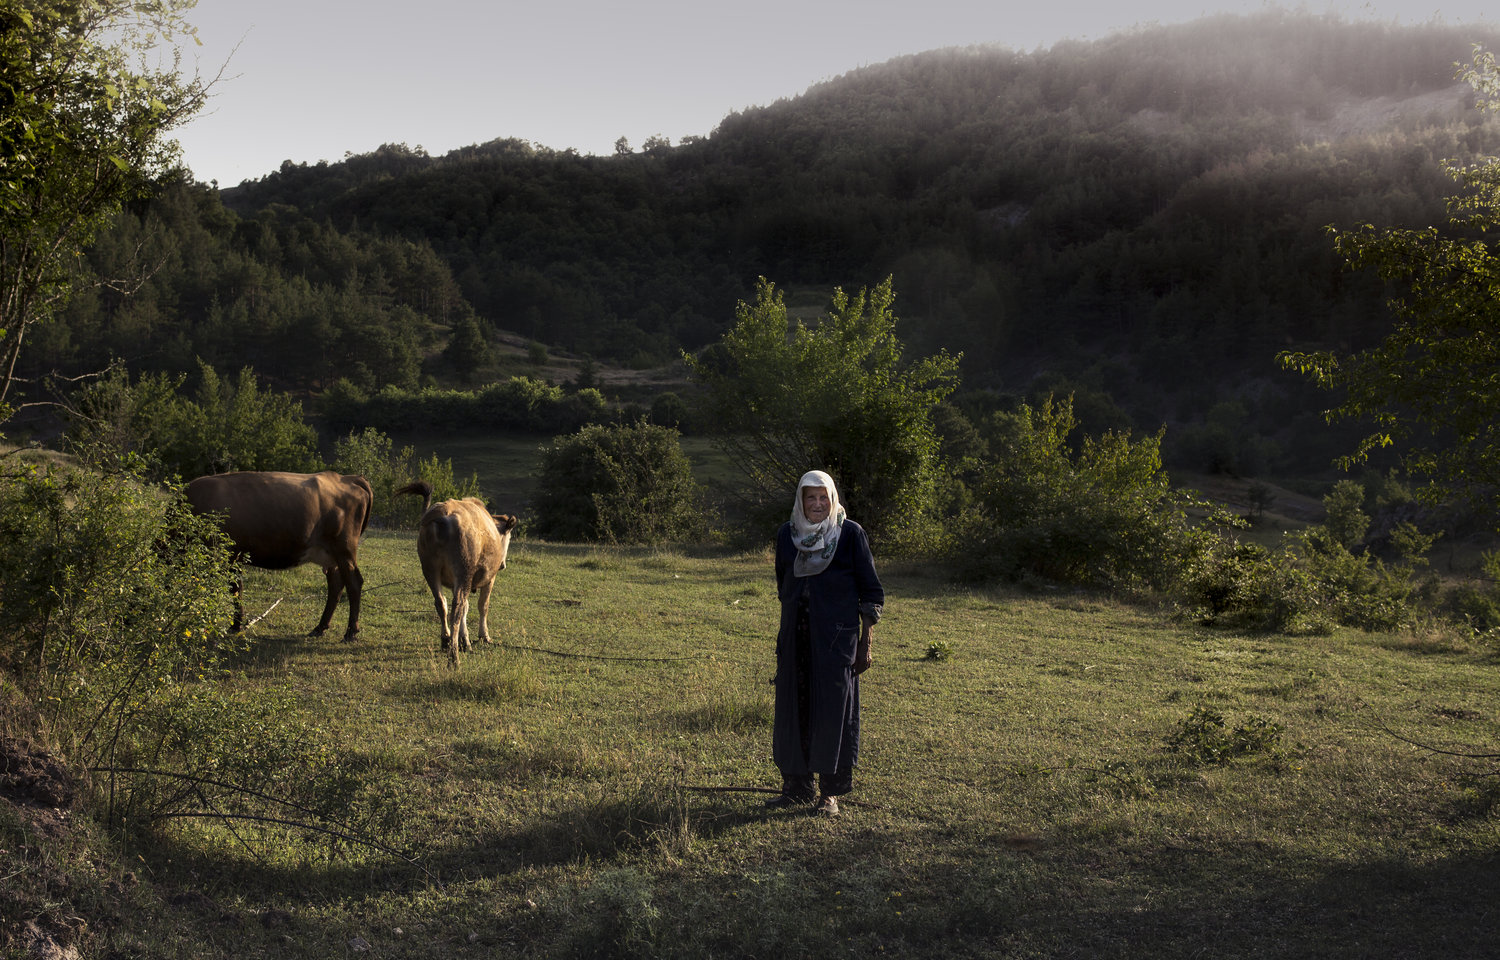 A shepherd tends to her cattle outside of the Pomak village of Kushla in Southern Bulgaria in June 2017. The Pomak people are a Muslim minority group of Slavic descent residing in Greece and Bulgaria since the fall of the Ottoman Empire.